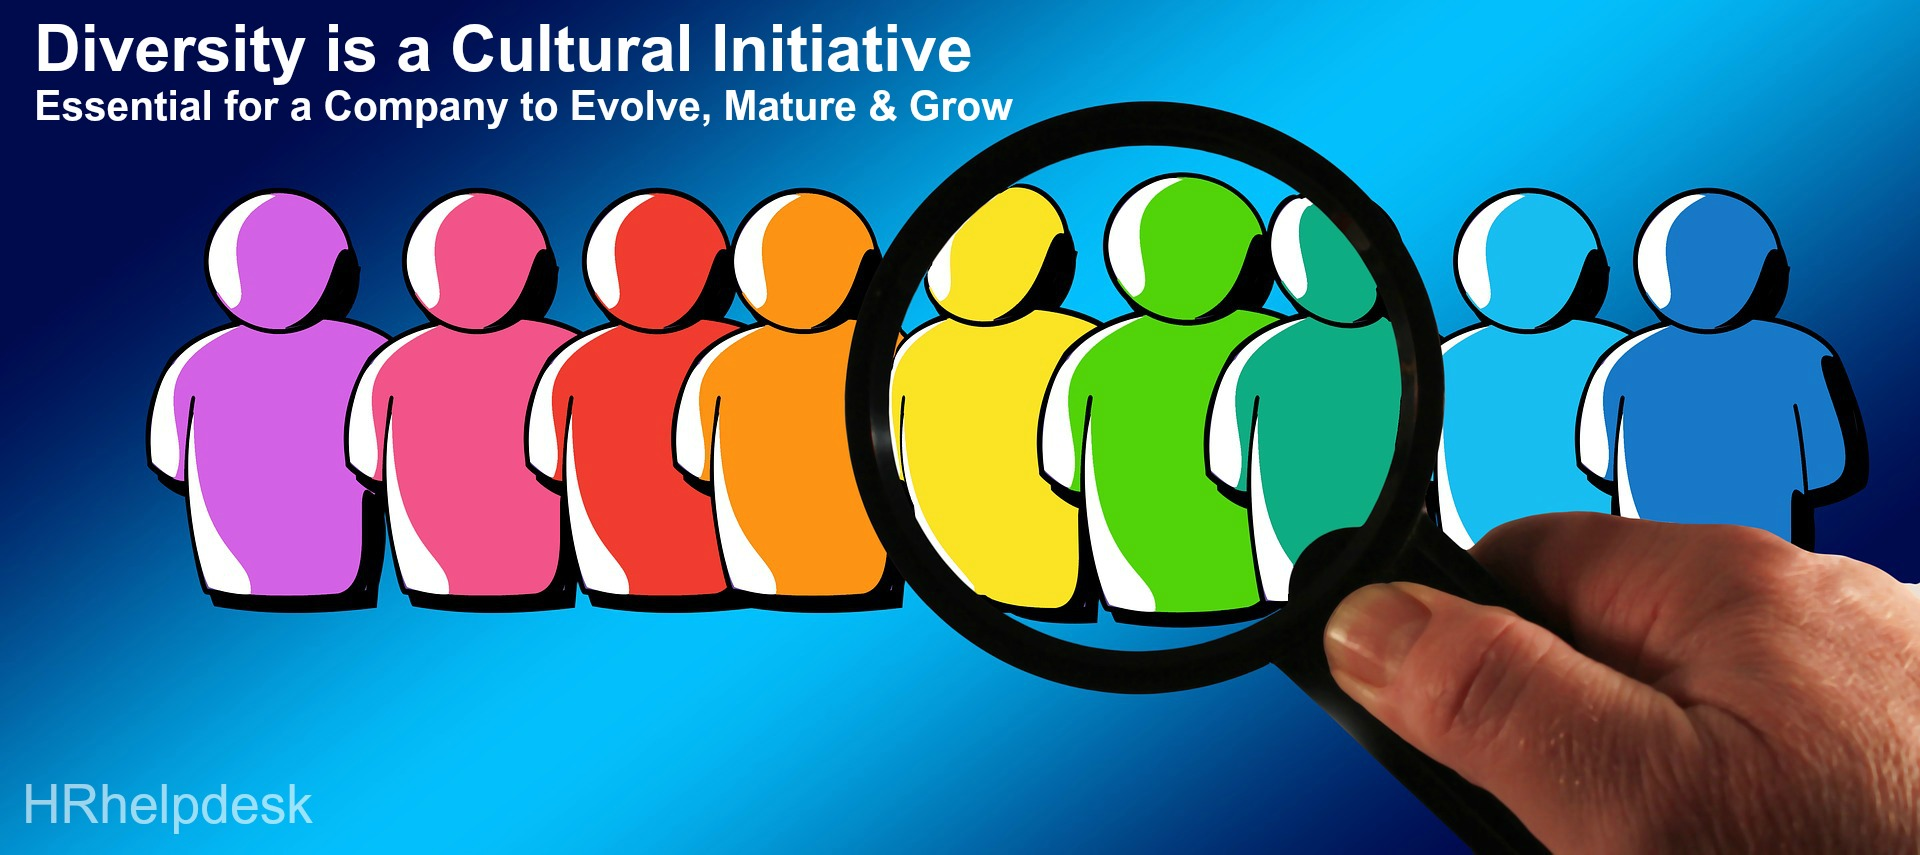 diversity cultural initiative HR consulting